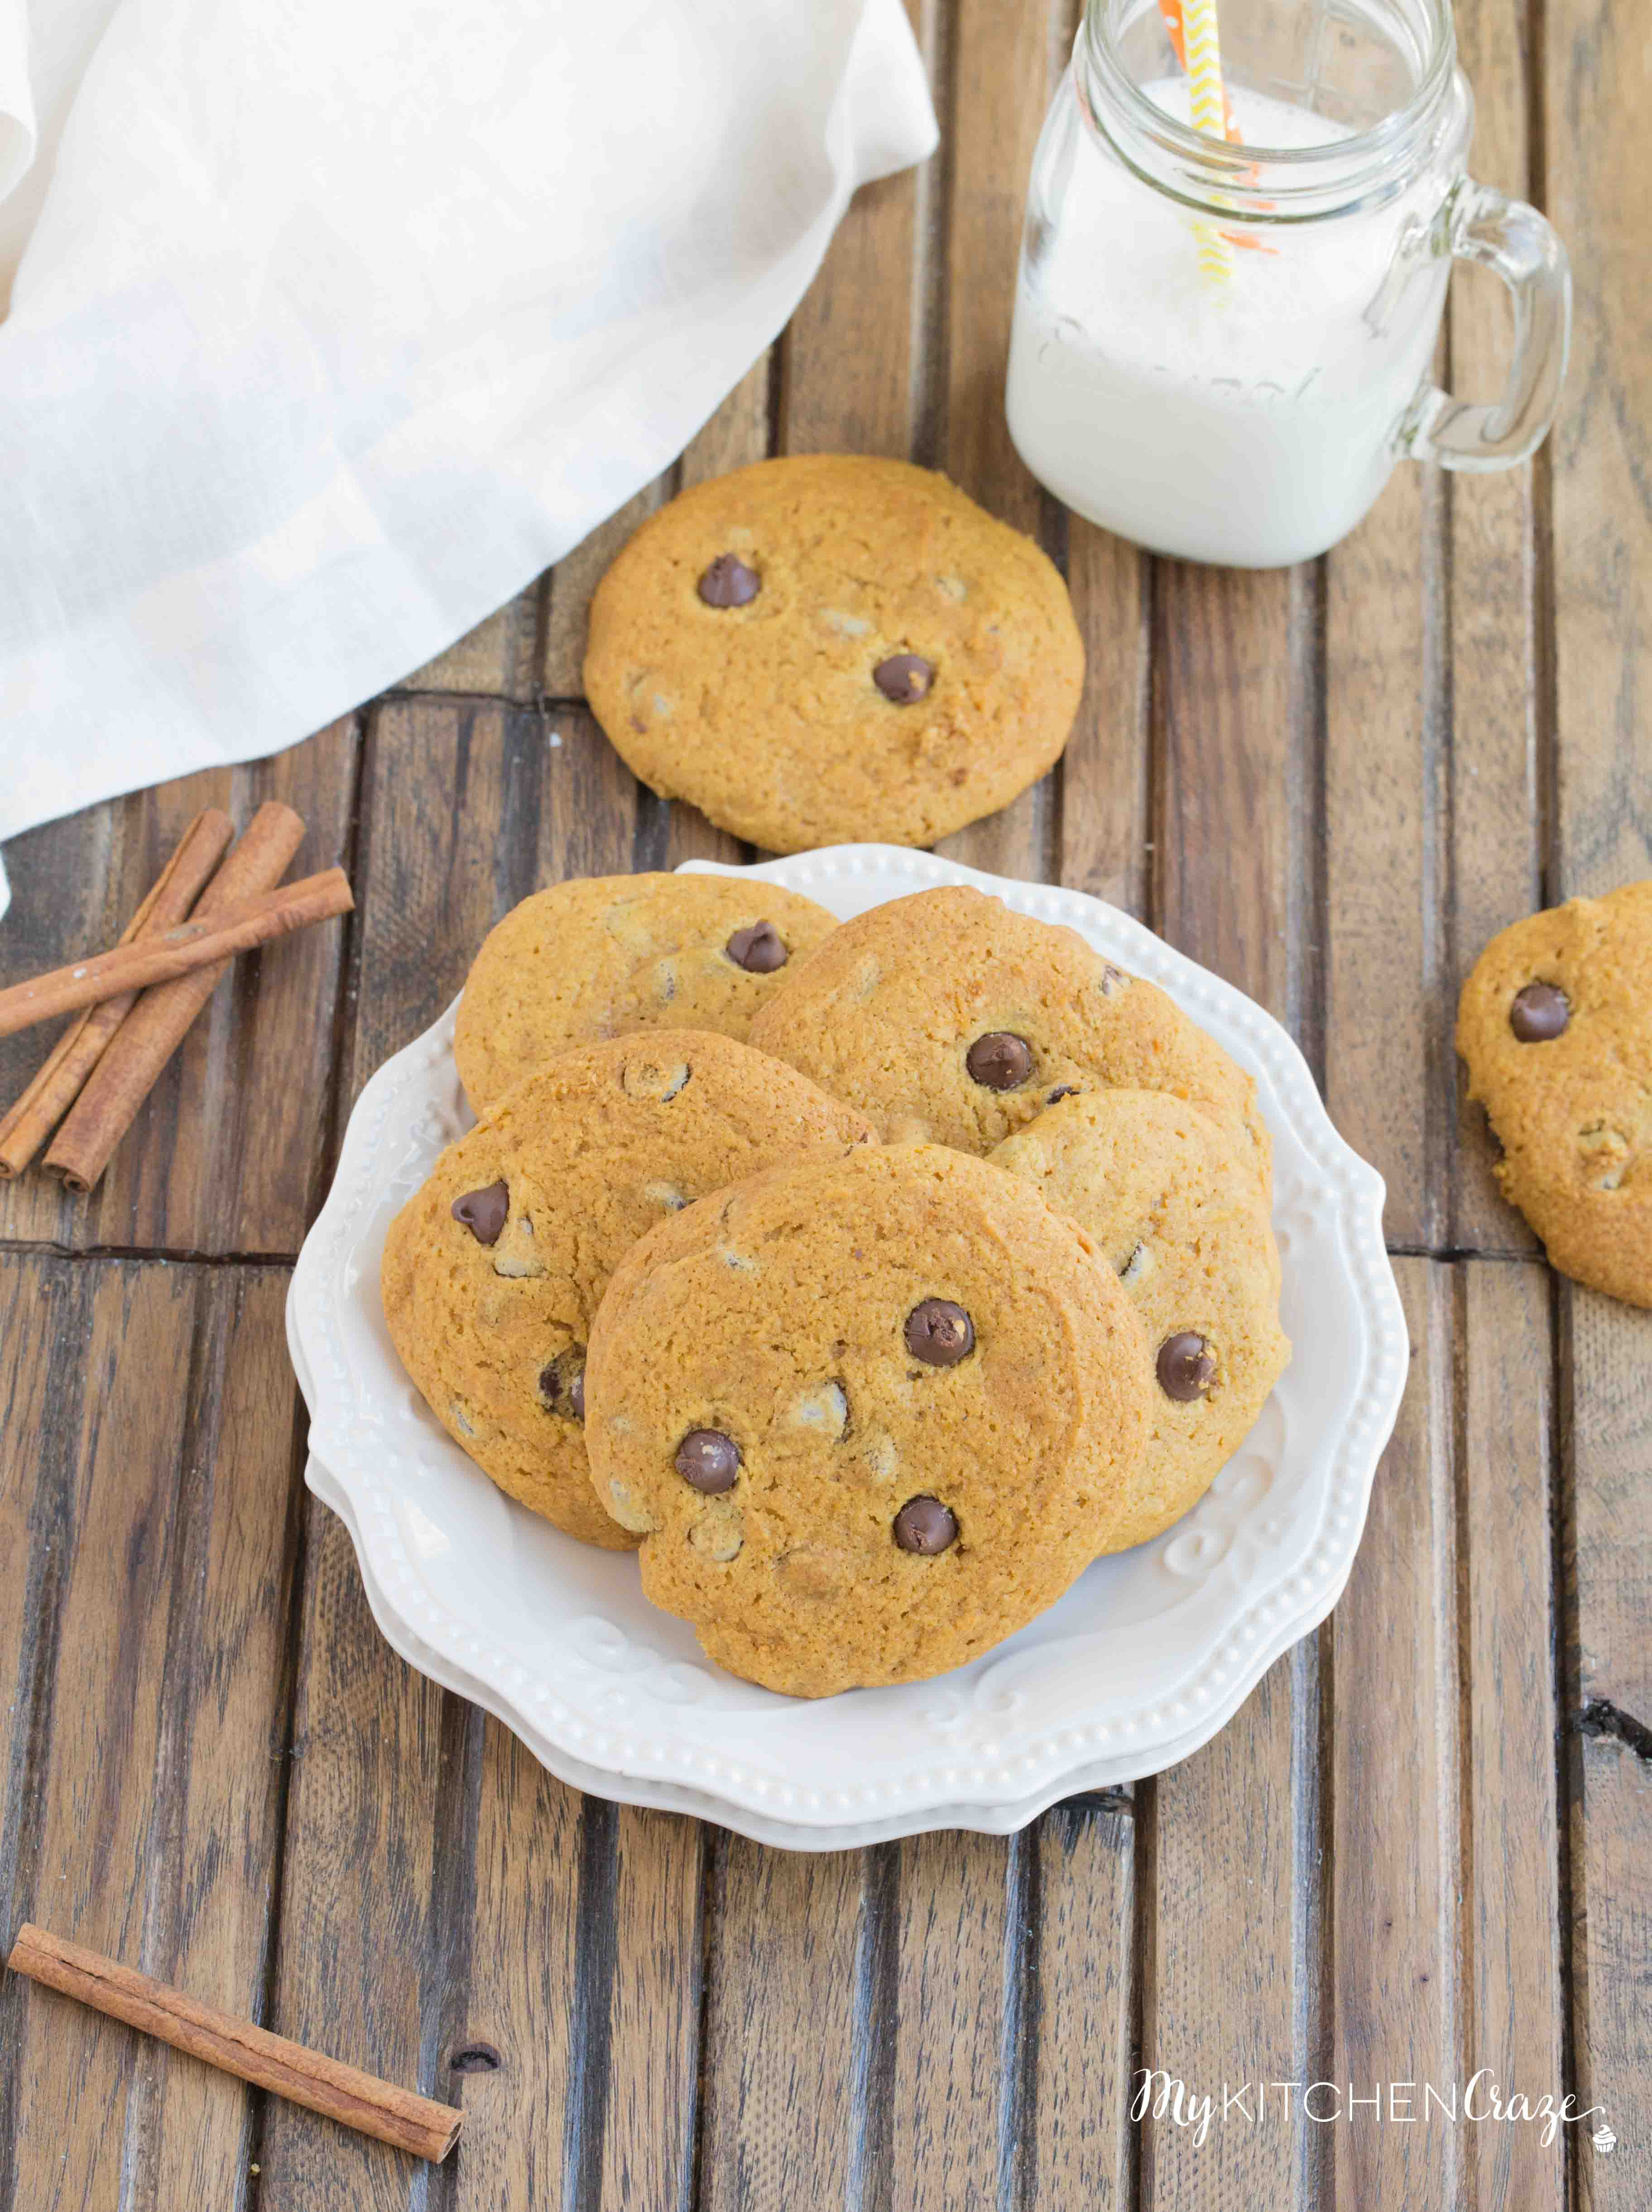 Pumpkin Chocolate Chip Cookies ~ Delicious pumpkin cookies filled with chocolate chips. These cookies are moist and perfect for the season!